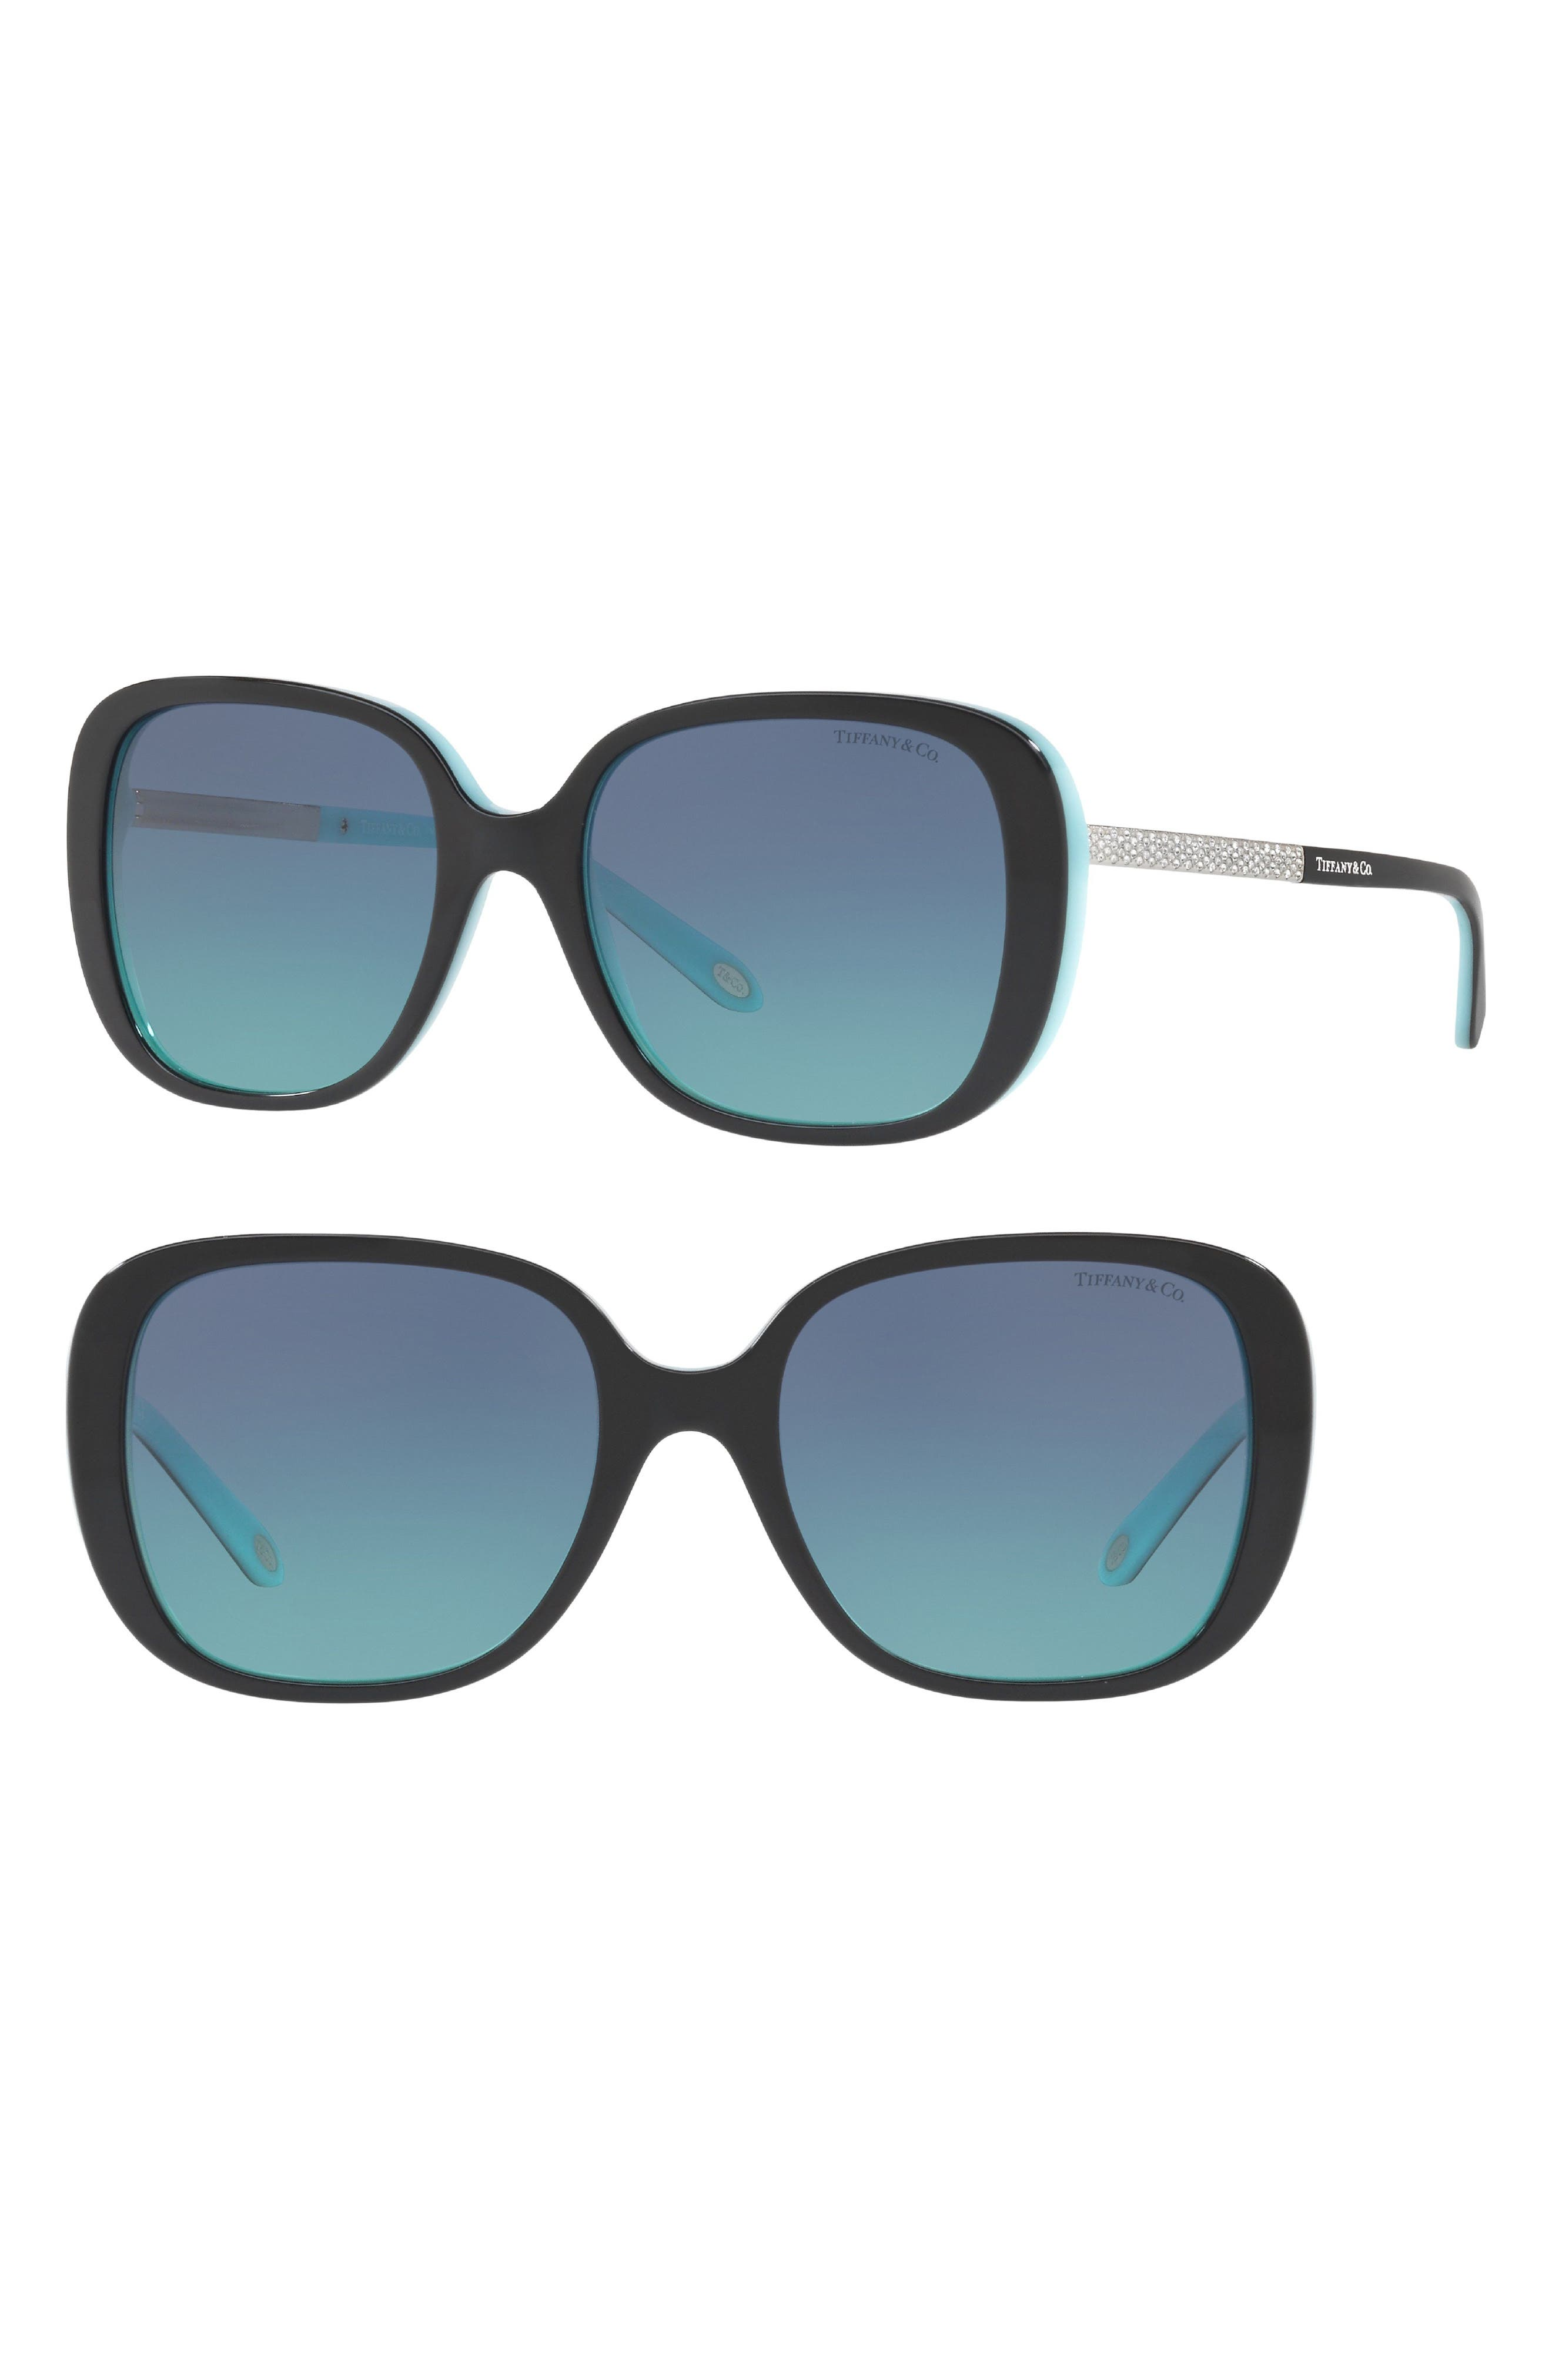 54mm Gradient Sunglasses,                             Alternate thumbnail 2, color,                             BLACK/ BLUE